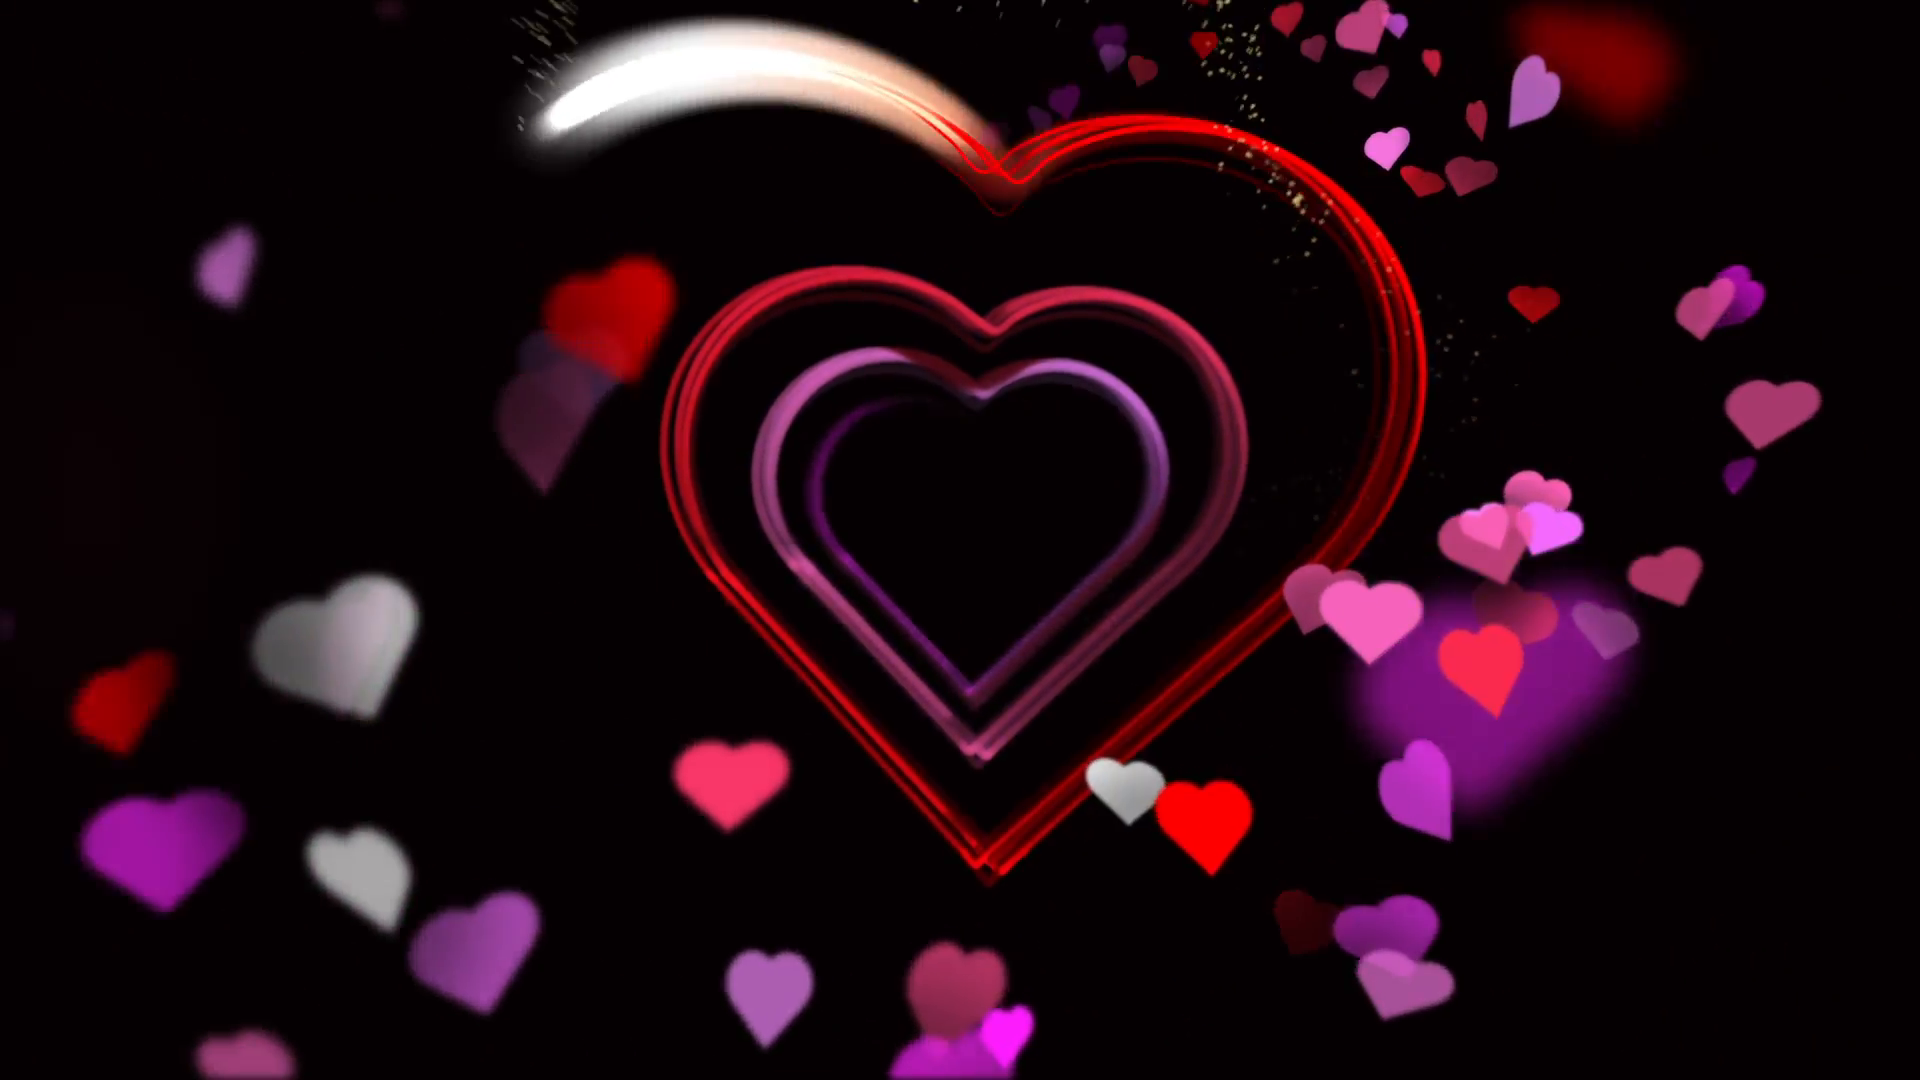 Heart of Love Valentineu0027s Day Animation Loop Motion Background - VideoBlocks - Animated Valentines Day PNG